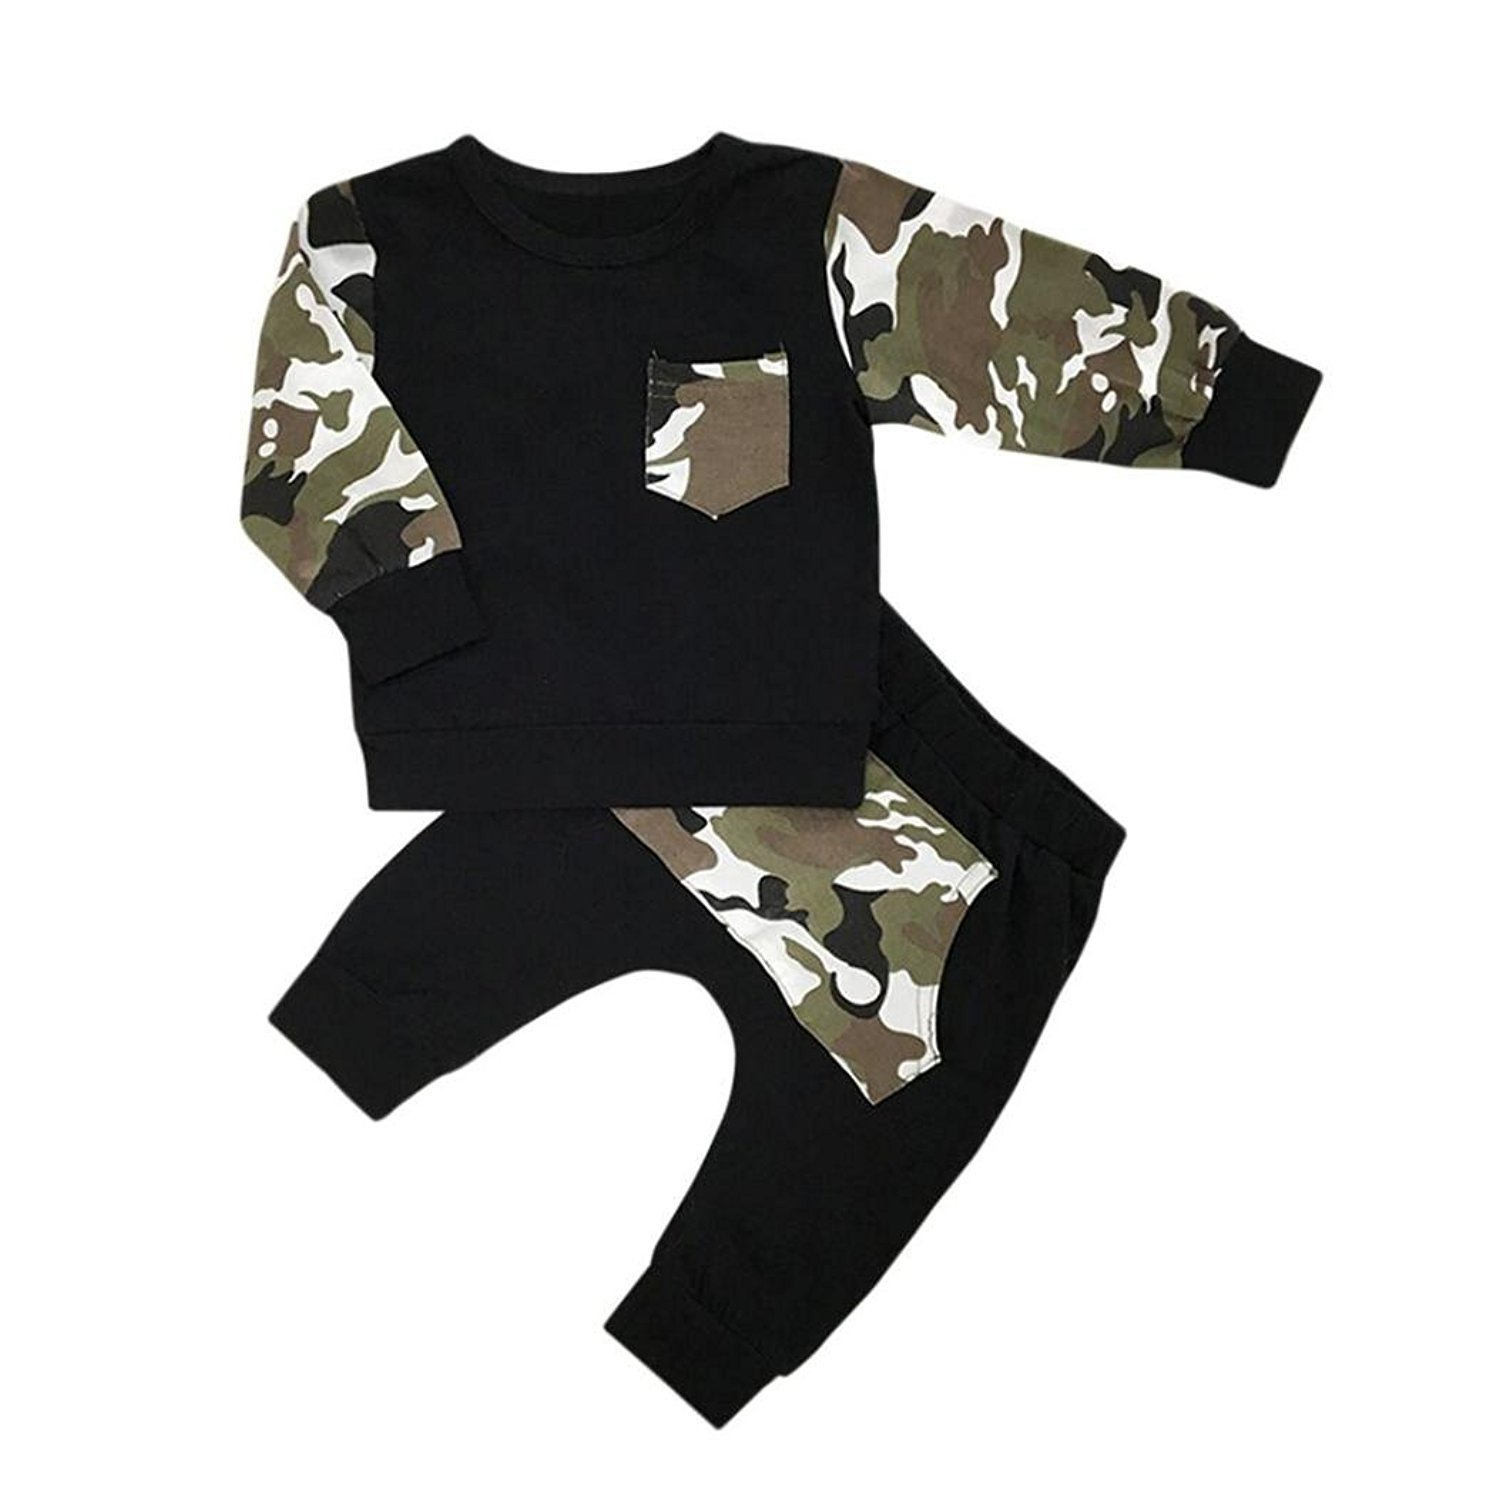 Webla Toddler Baby Boy Tracksuits T Shirt Tops+Pants Camouflage Clothes Set Ages 0-24 Months 0-6 Month